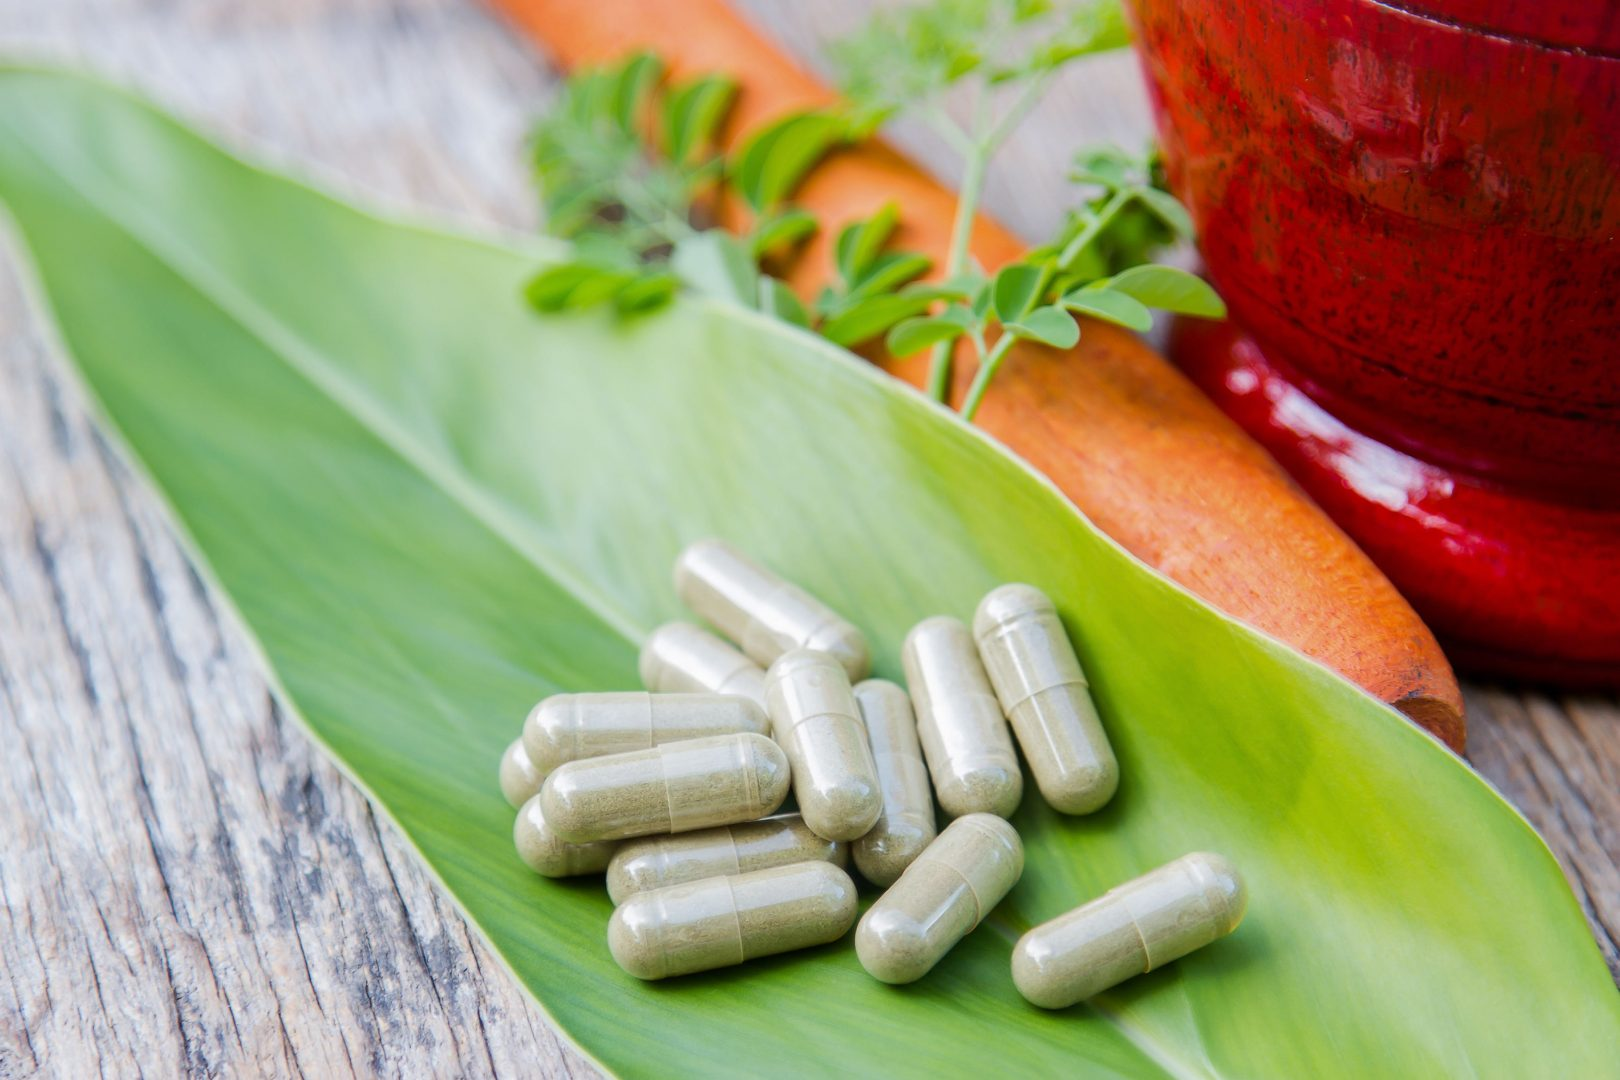 The Facts on Multivitamins